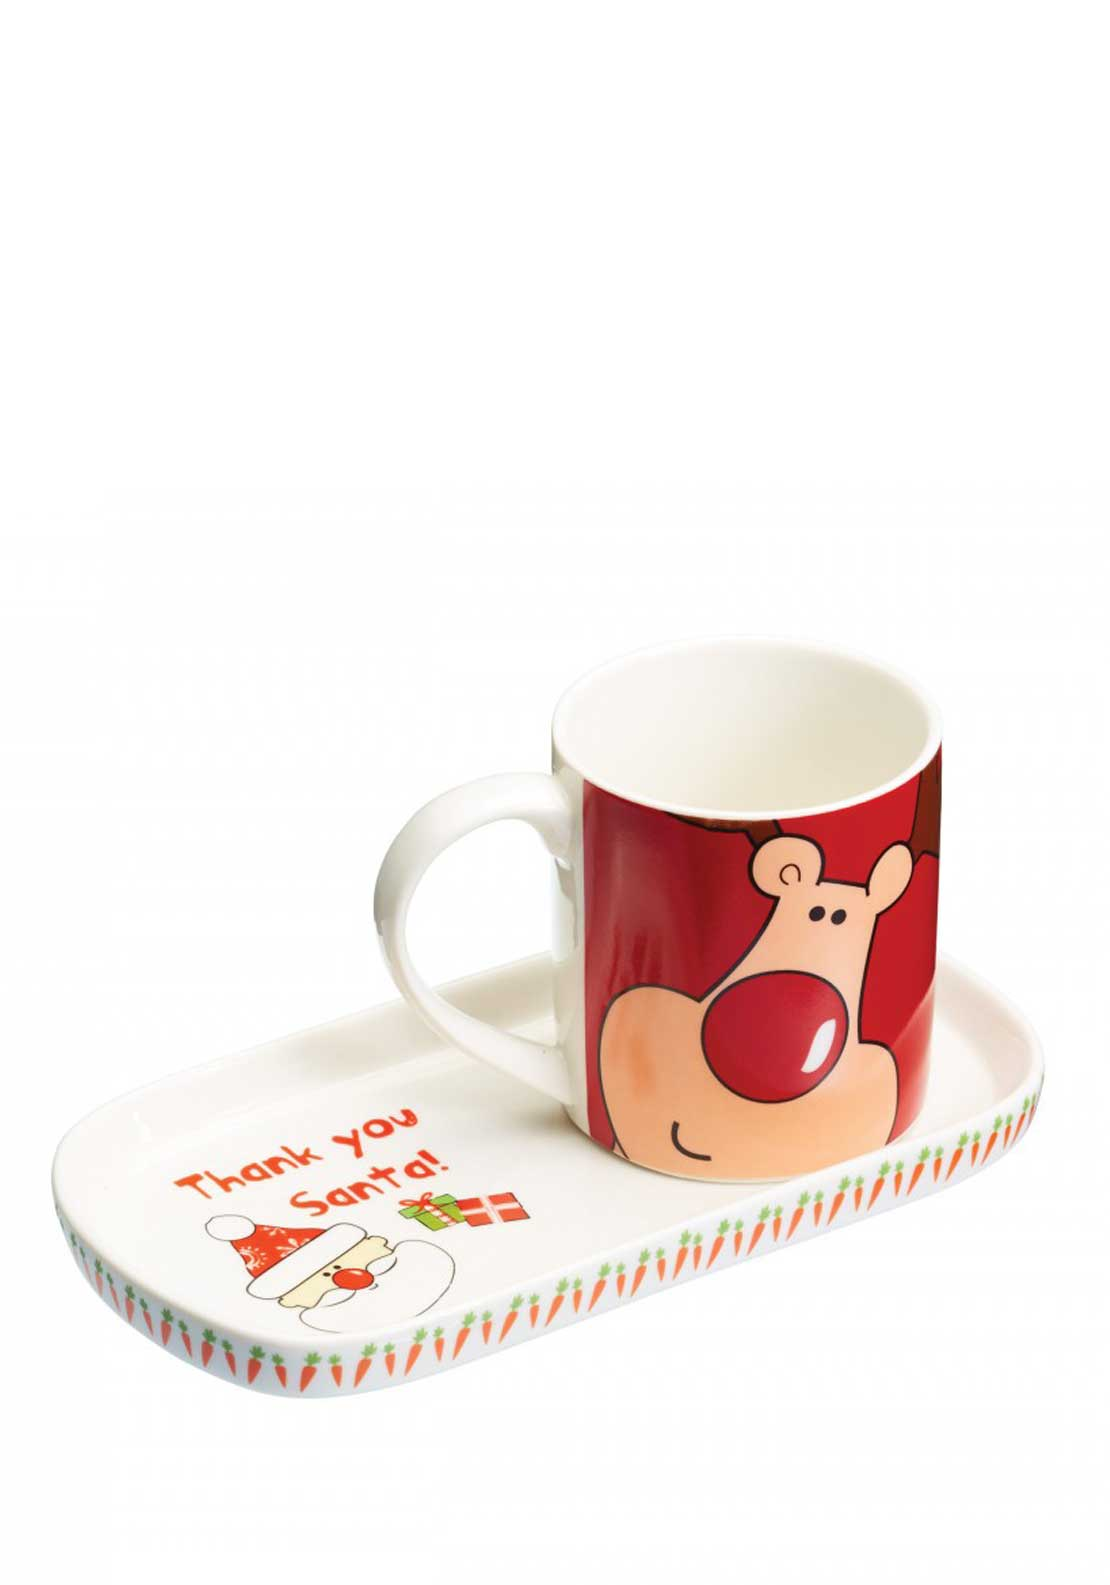 KitchenCraft Santa & Friends Christmas Mug & Cookie Tray Set